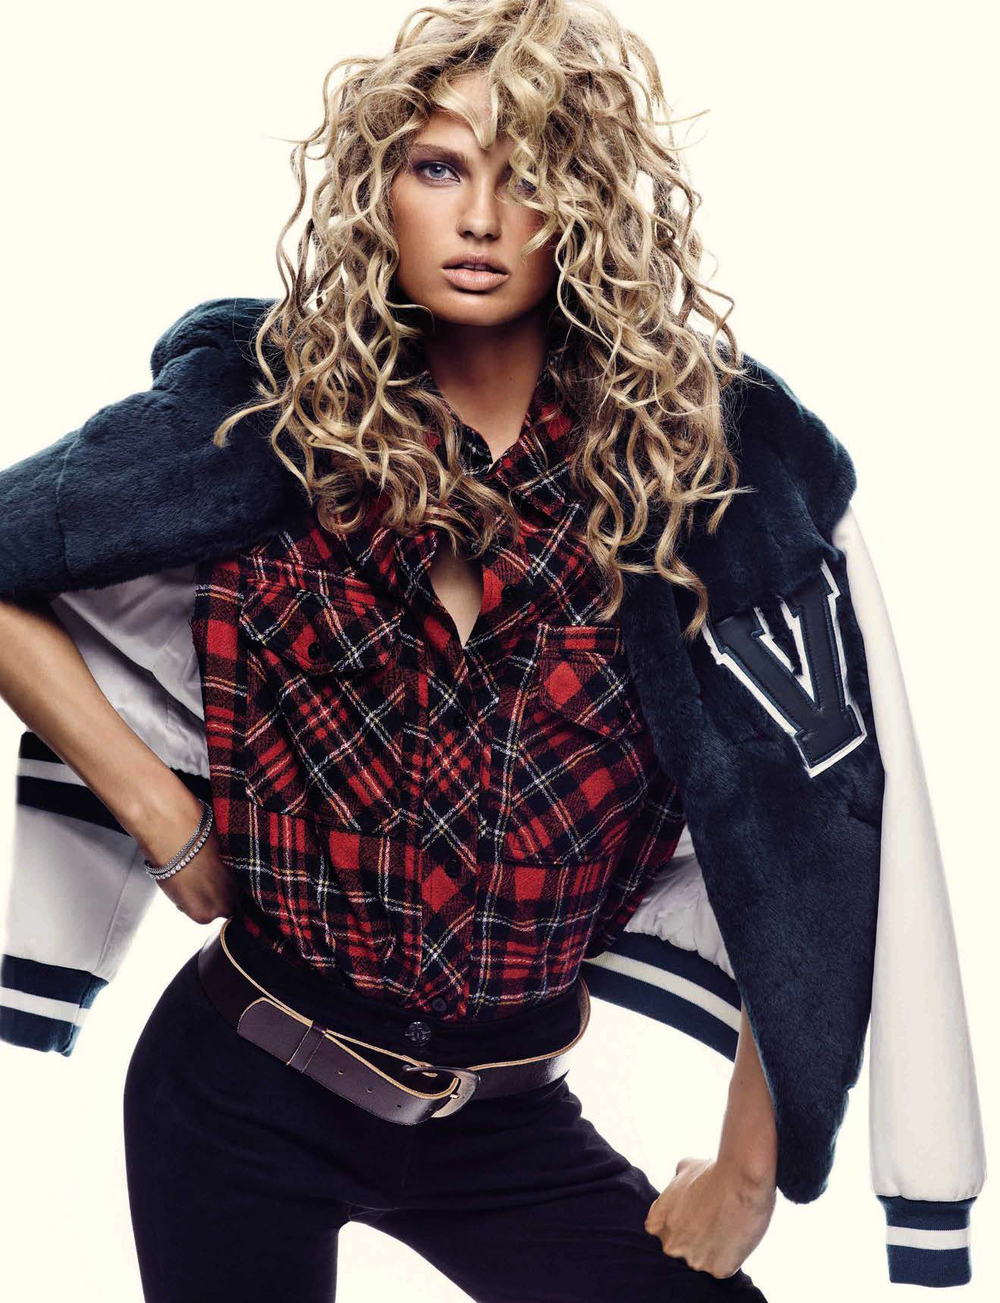 c904b-romee-strijd-by-nico-bustos-for-vogue-spain-october-2015-2.jpg